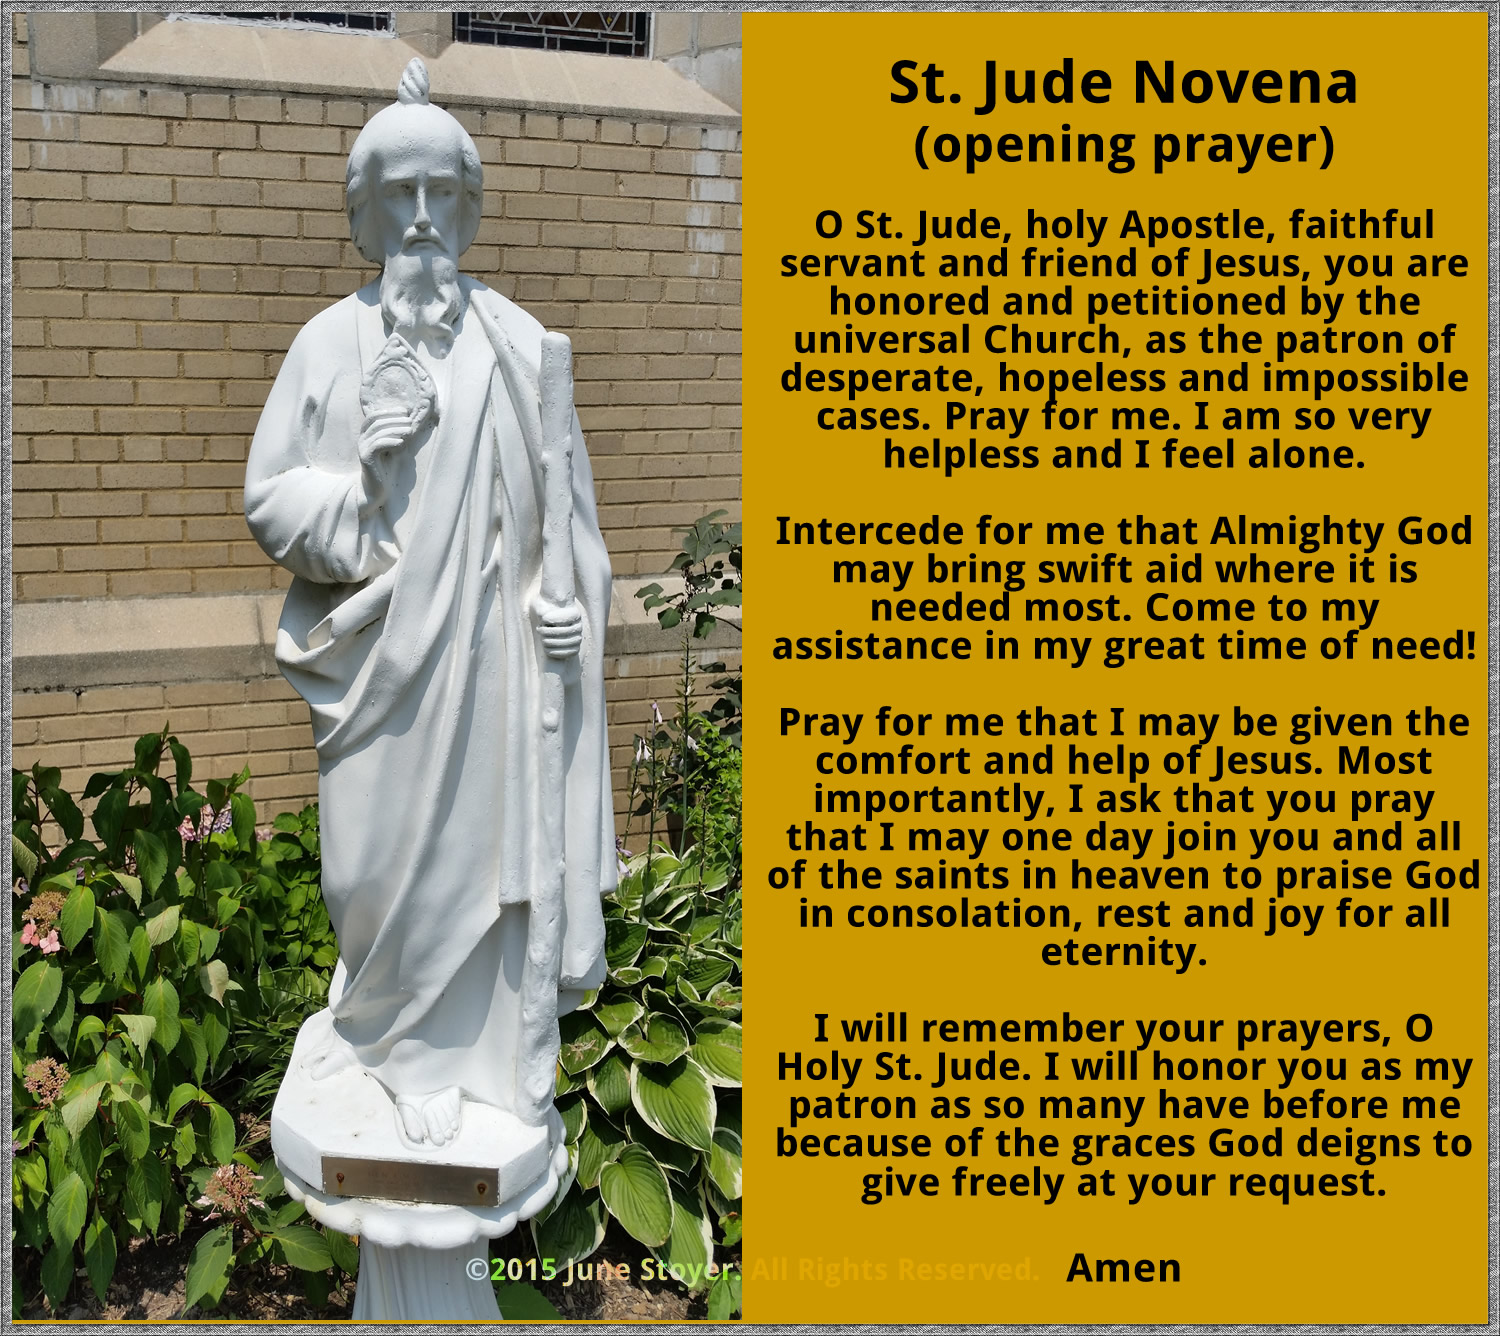 St jude novena prayer opening prayer view full size thecheapjerseys